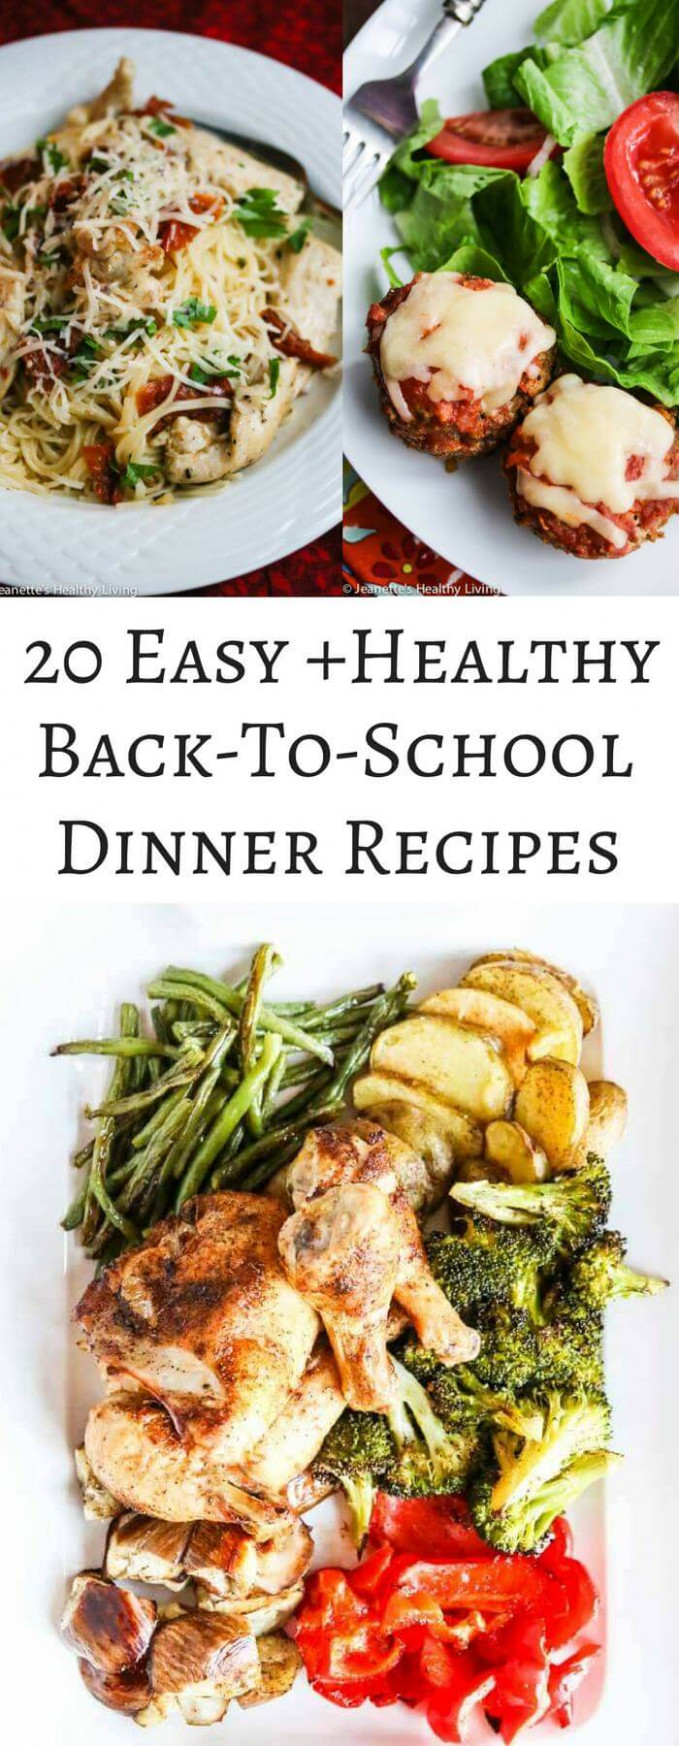 20 Easy Healthy Back-To-School Dinner Recipes - Jeanette's ..